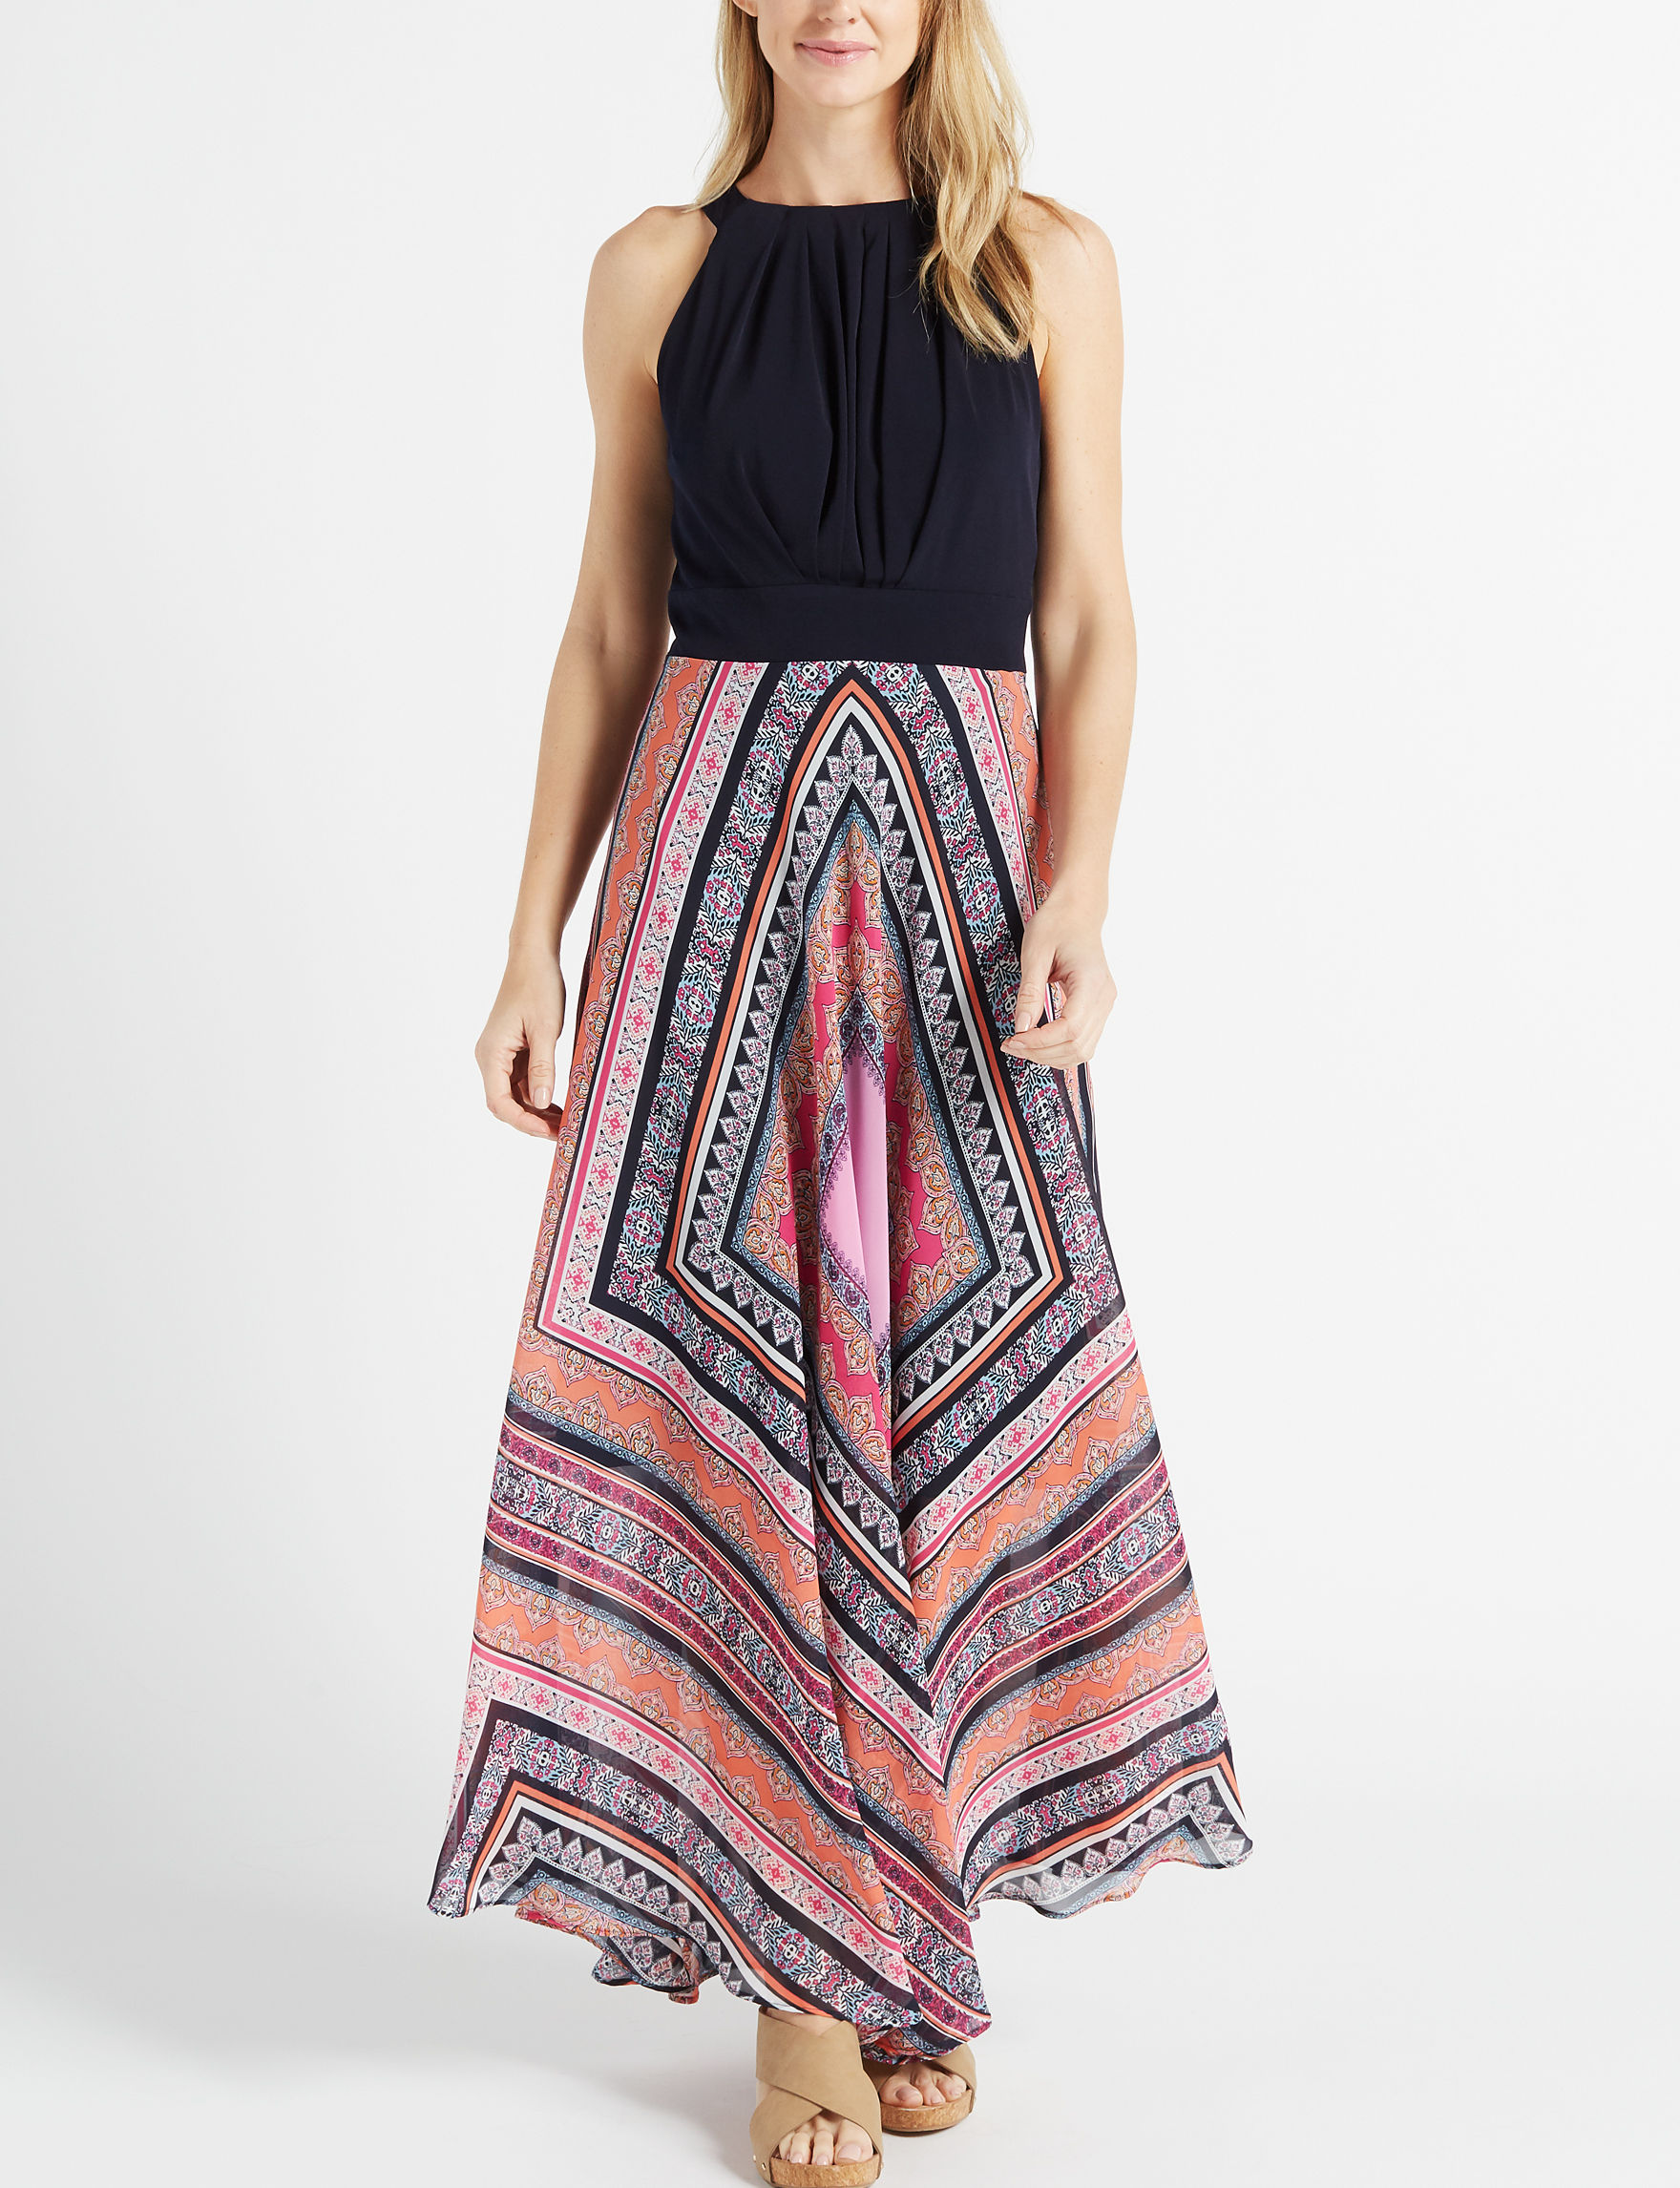 Sandra Darren Black/Pink/White Everyday & Casual Maxi Dresses